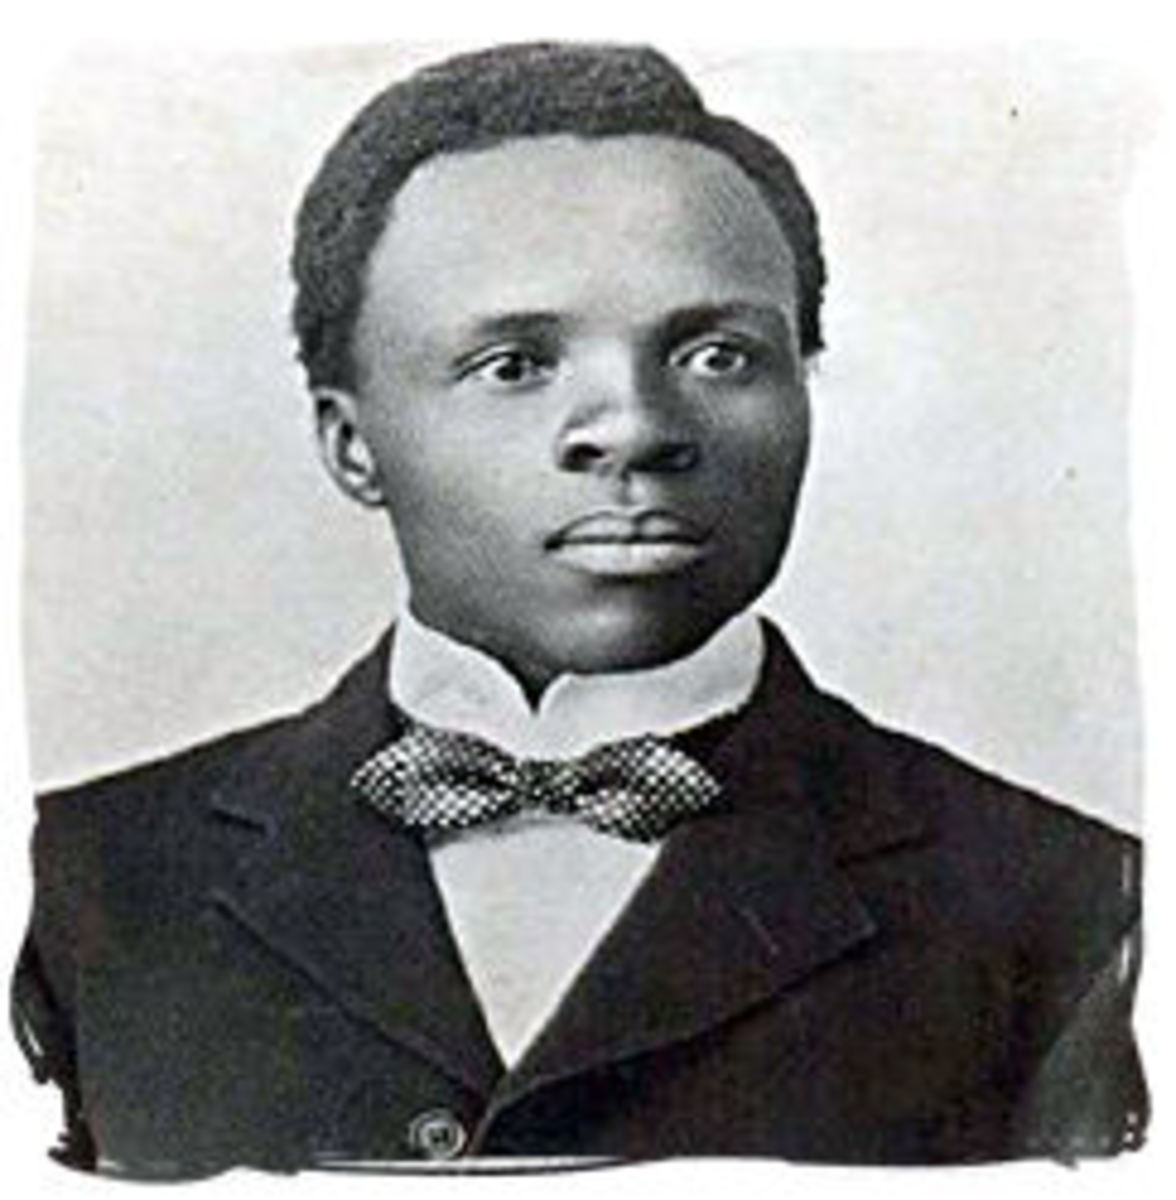 "Solomon ""Sol"" Thekiso Plaatjie was the first African South African to write a novel - Literature in South Africa, and was the first secretary general of the then Native National Congress in 1912, now known as the African National Congress(ANC)"